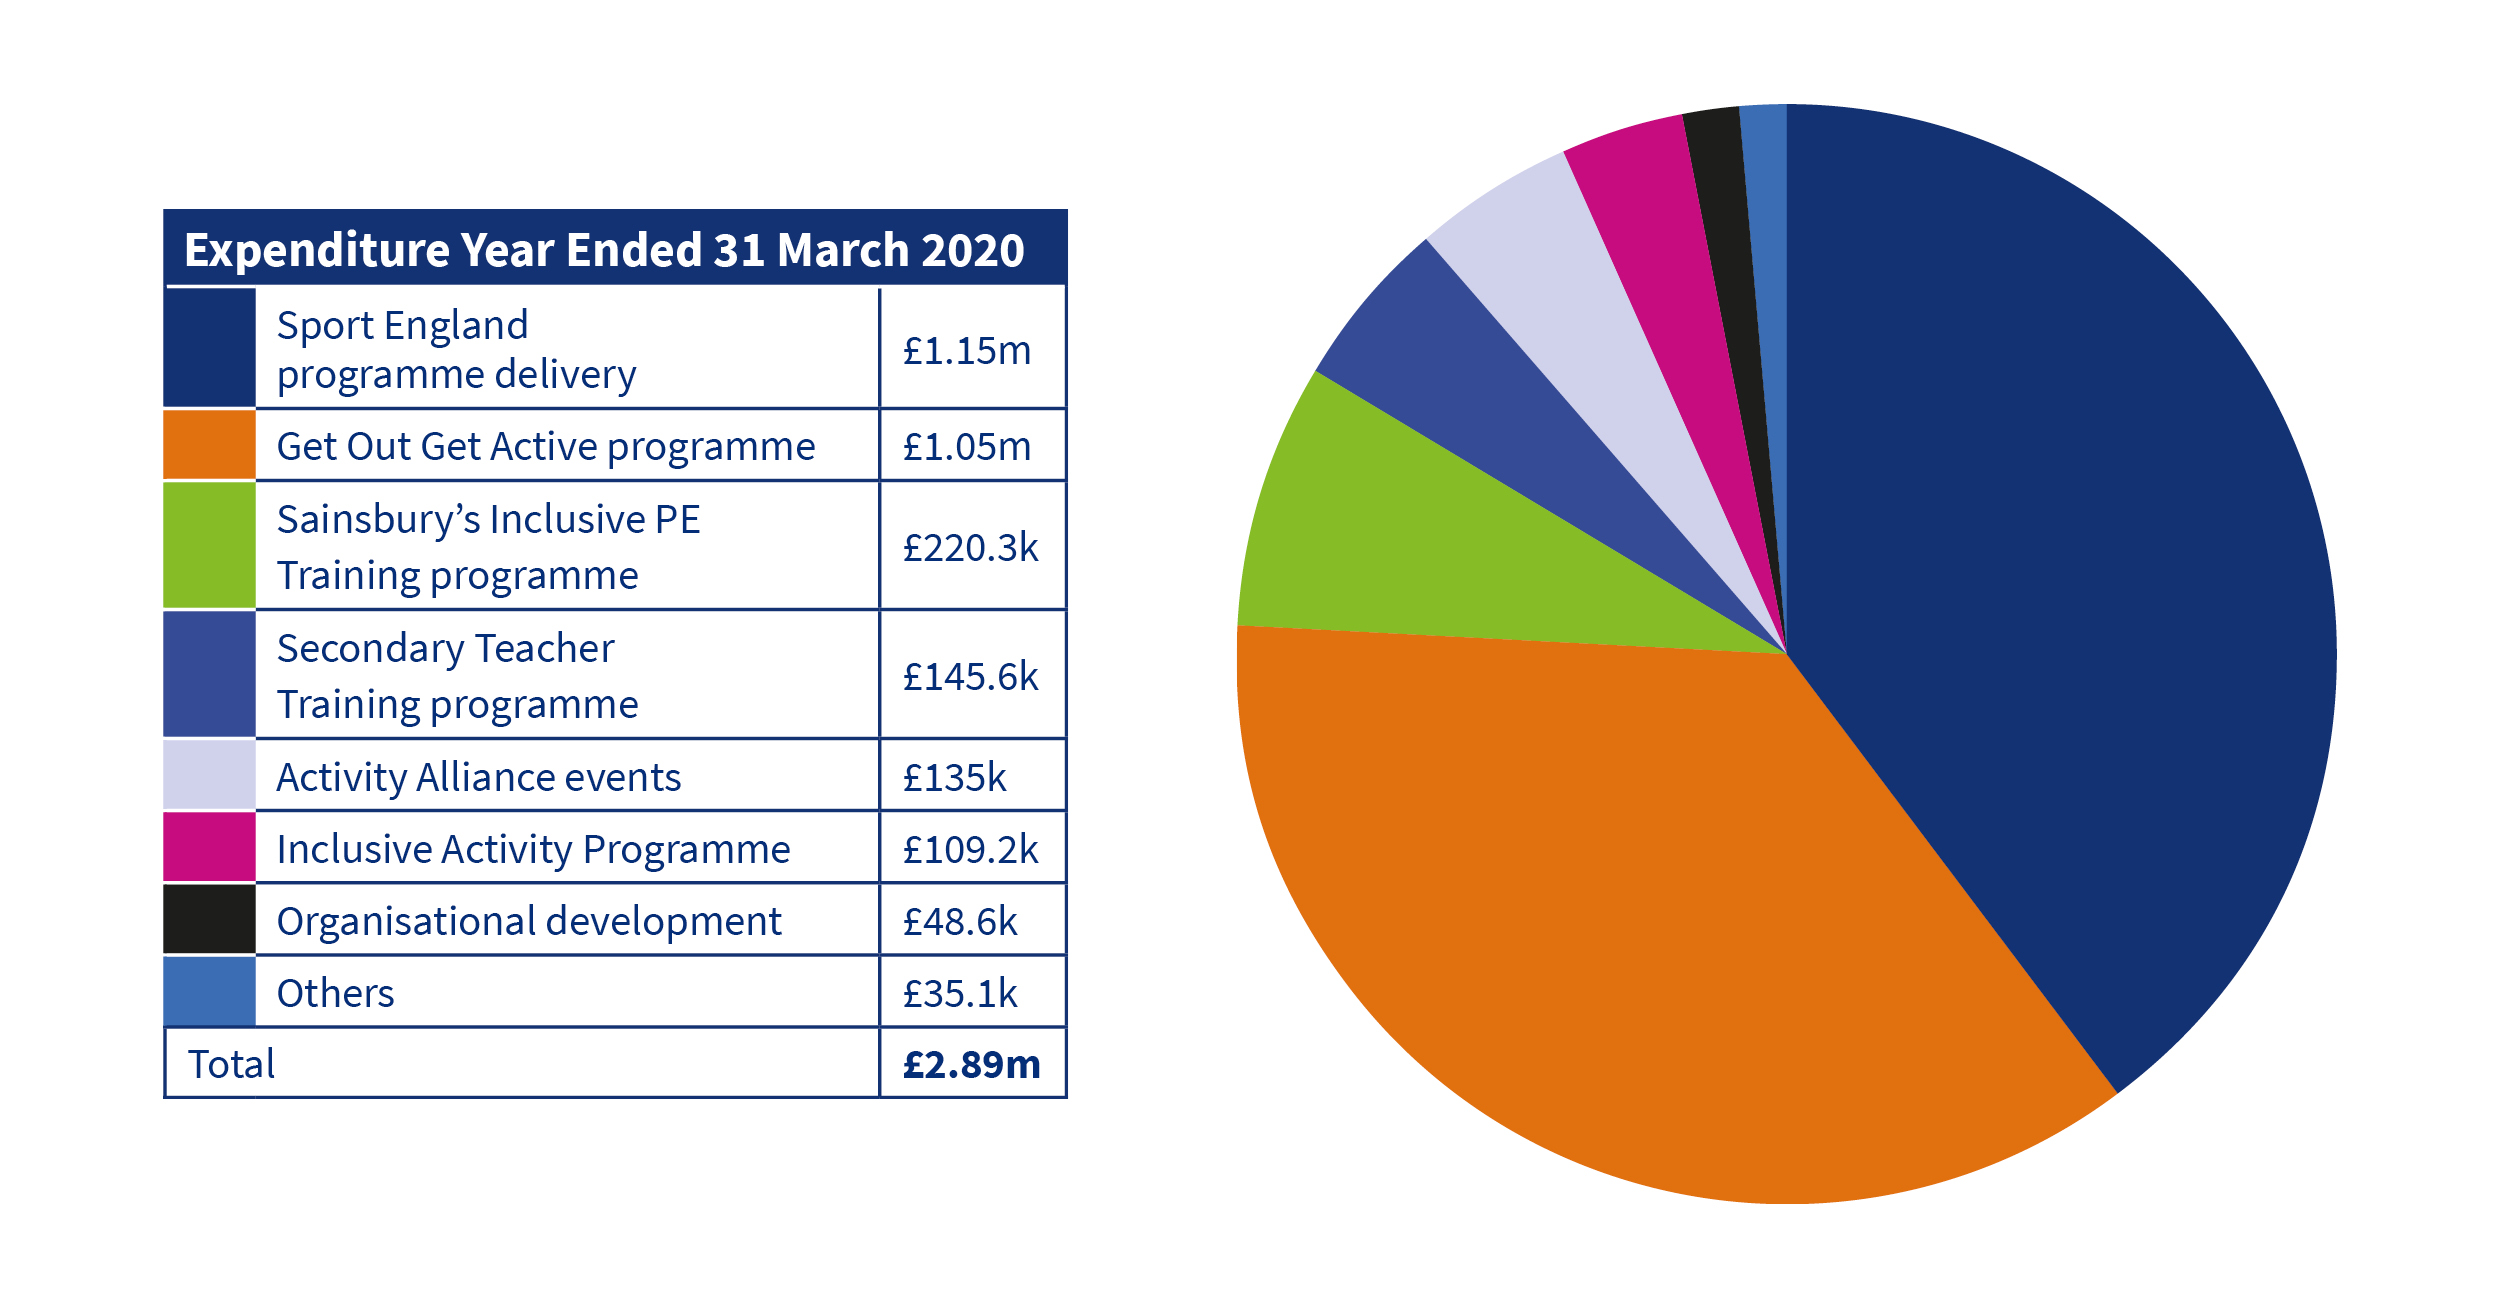 Activity Alliance expenditure year ended 31 March 2020 table and pie chart